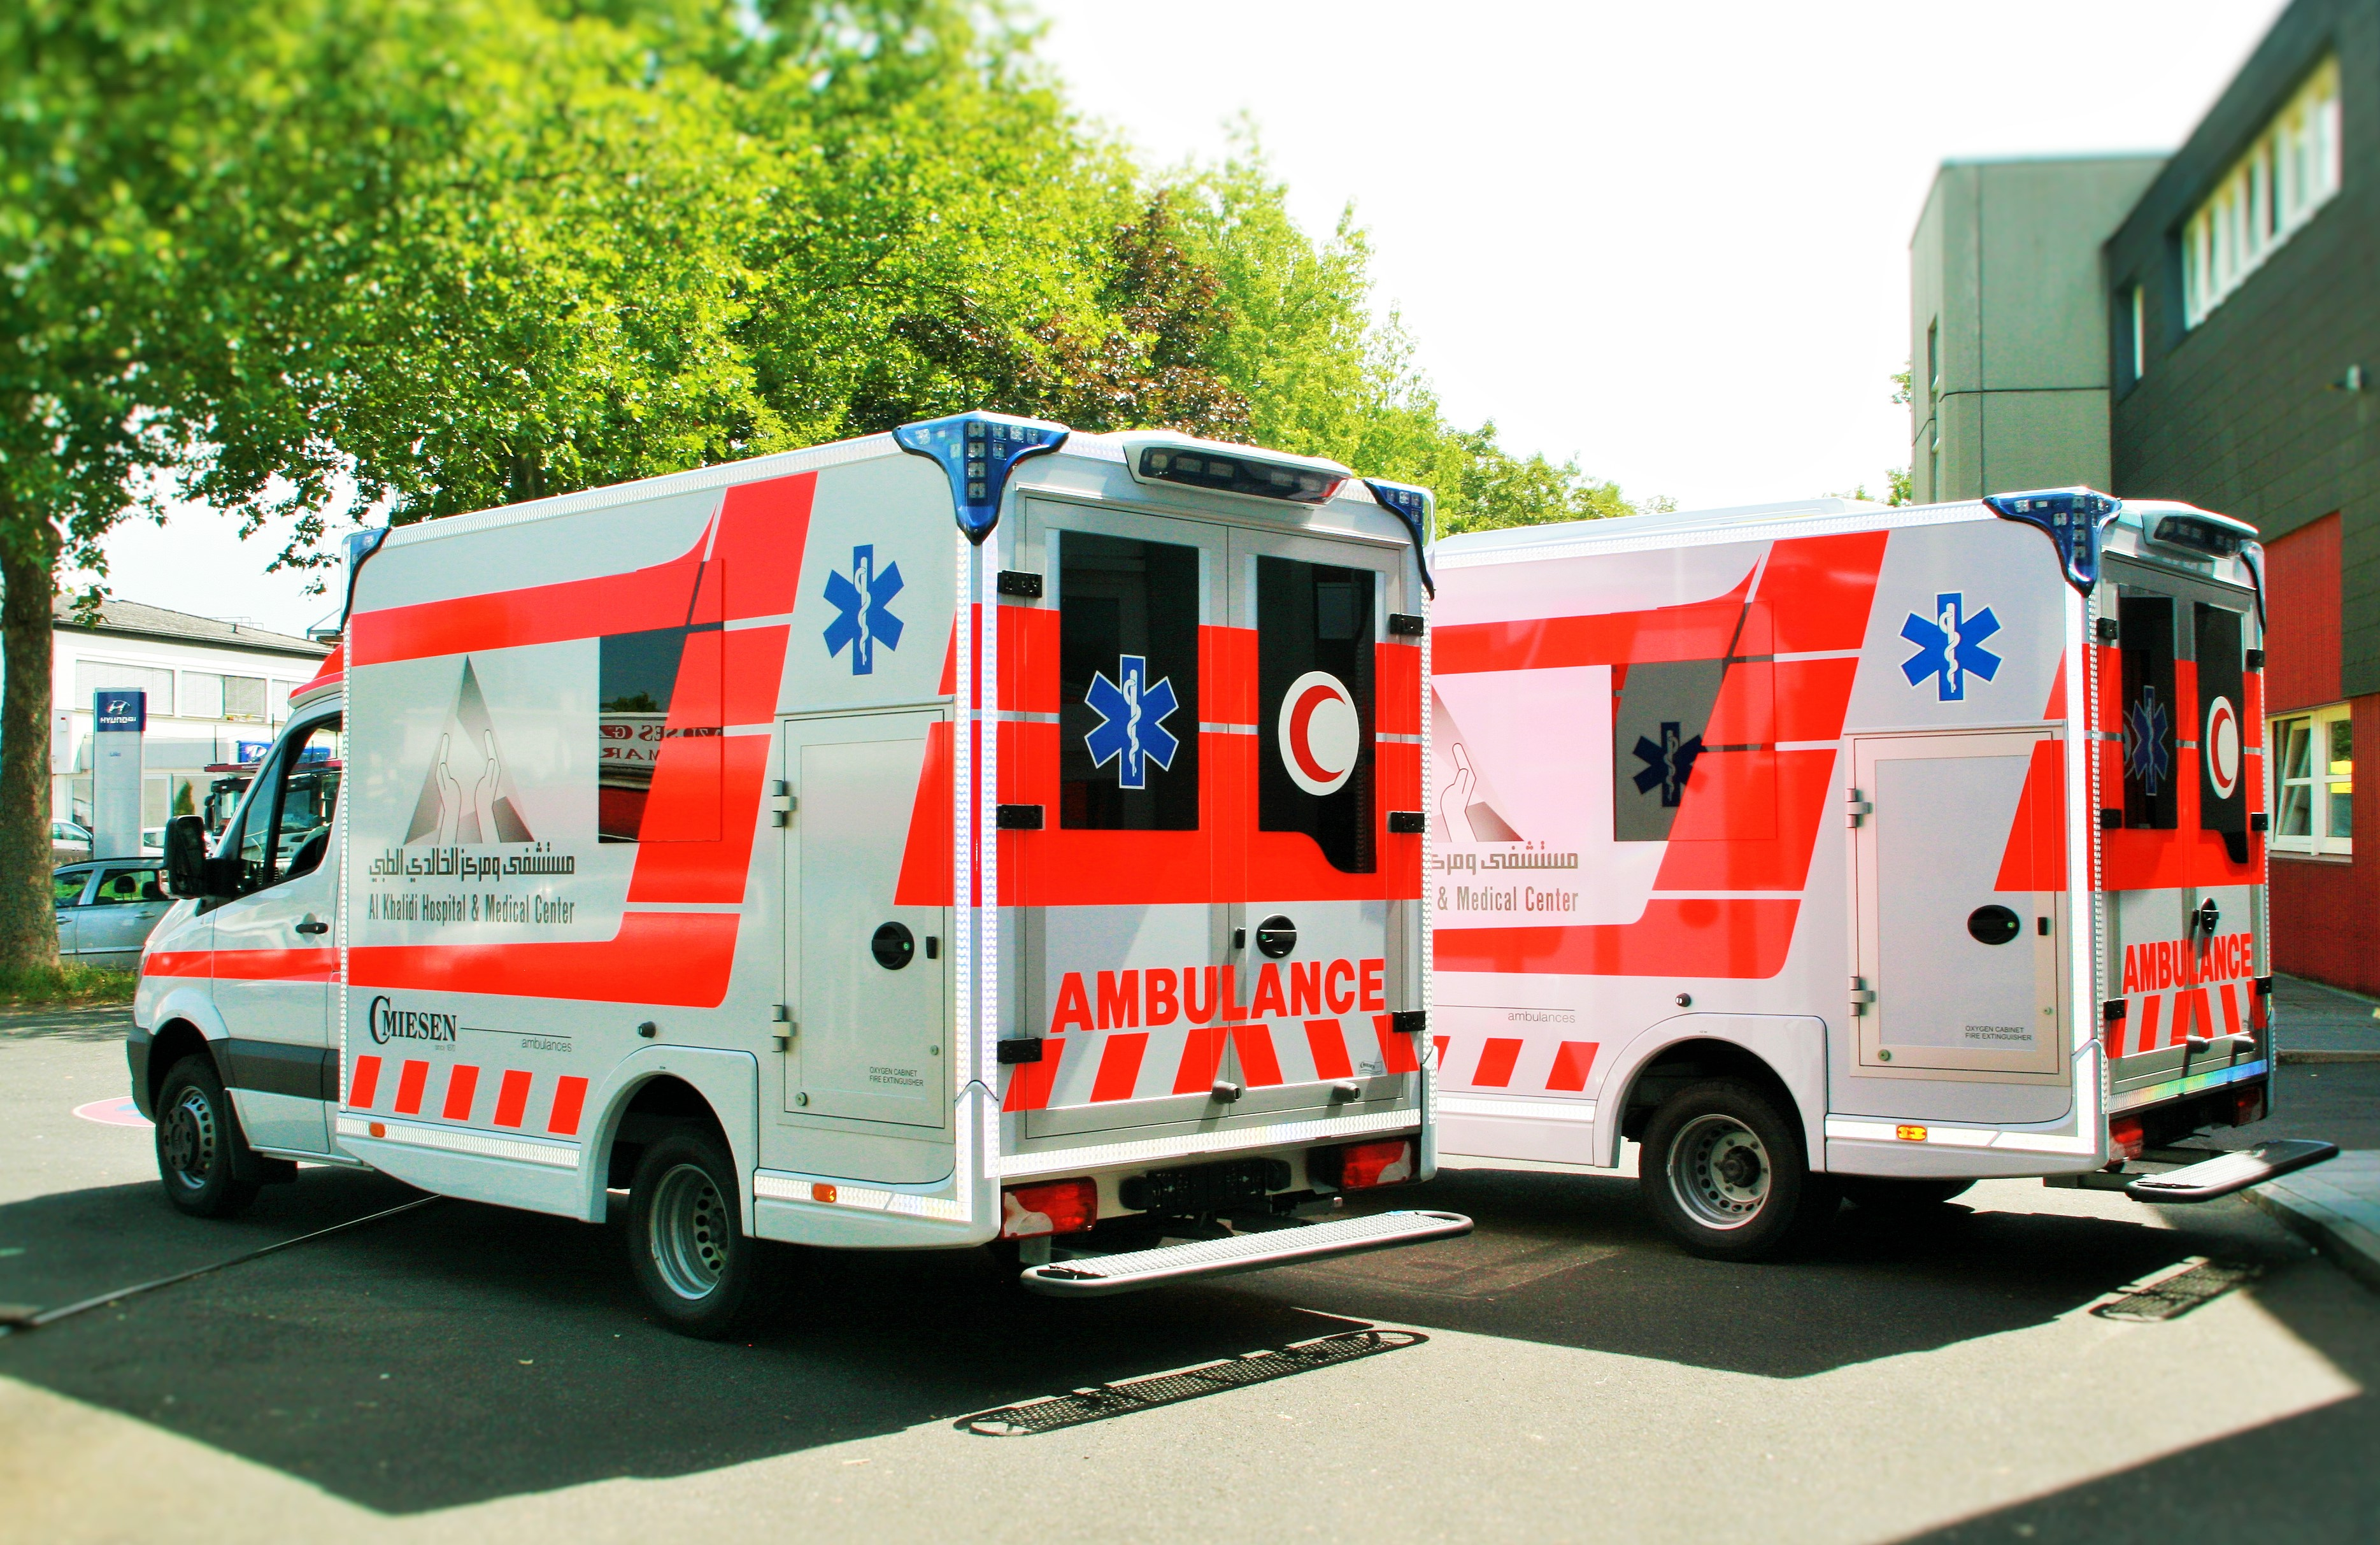 We wish the rescue forces of these ambulances the best of success in ...